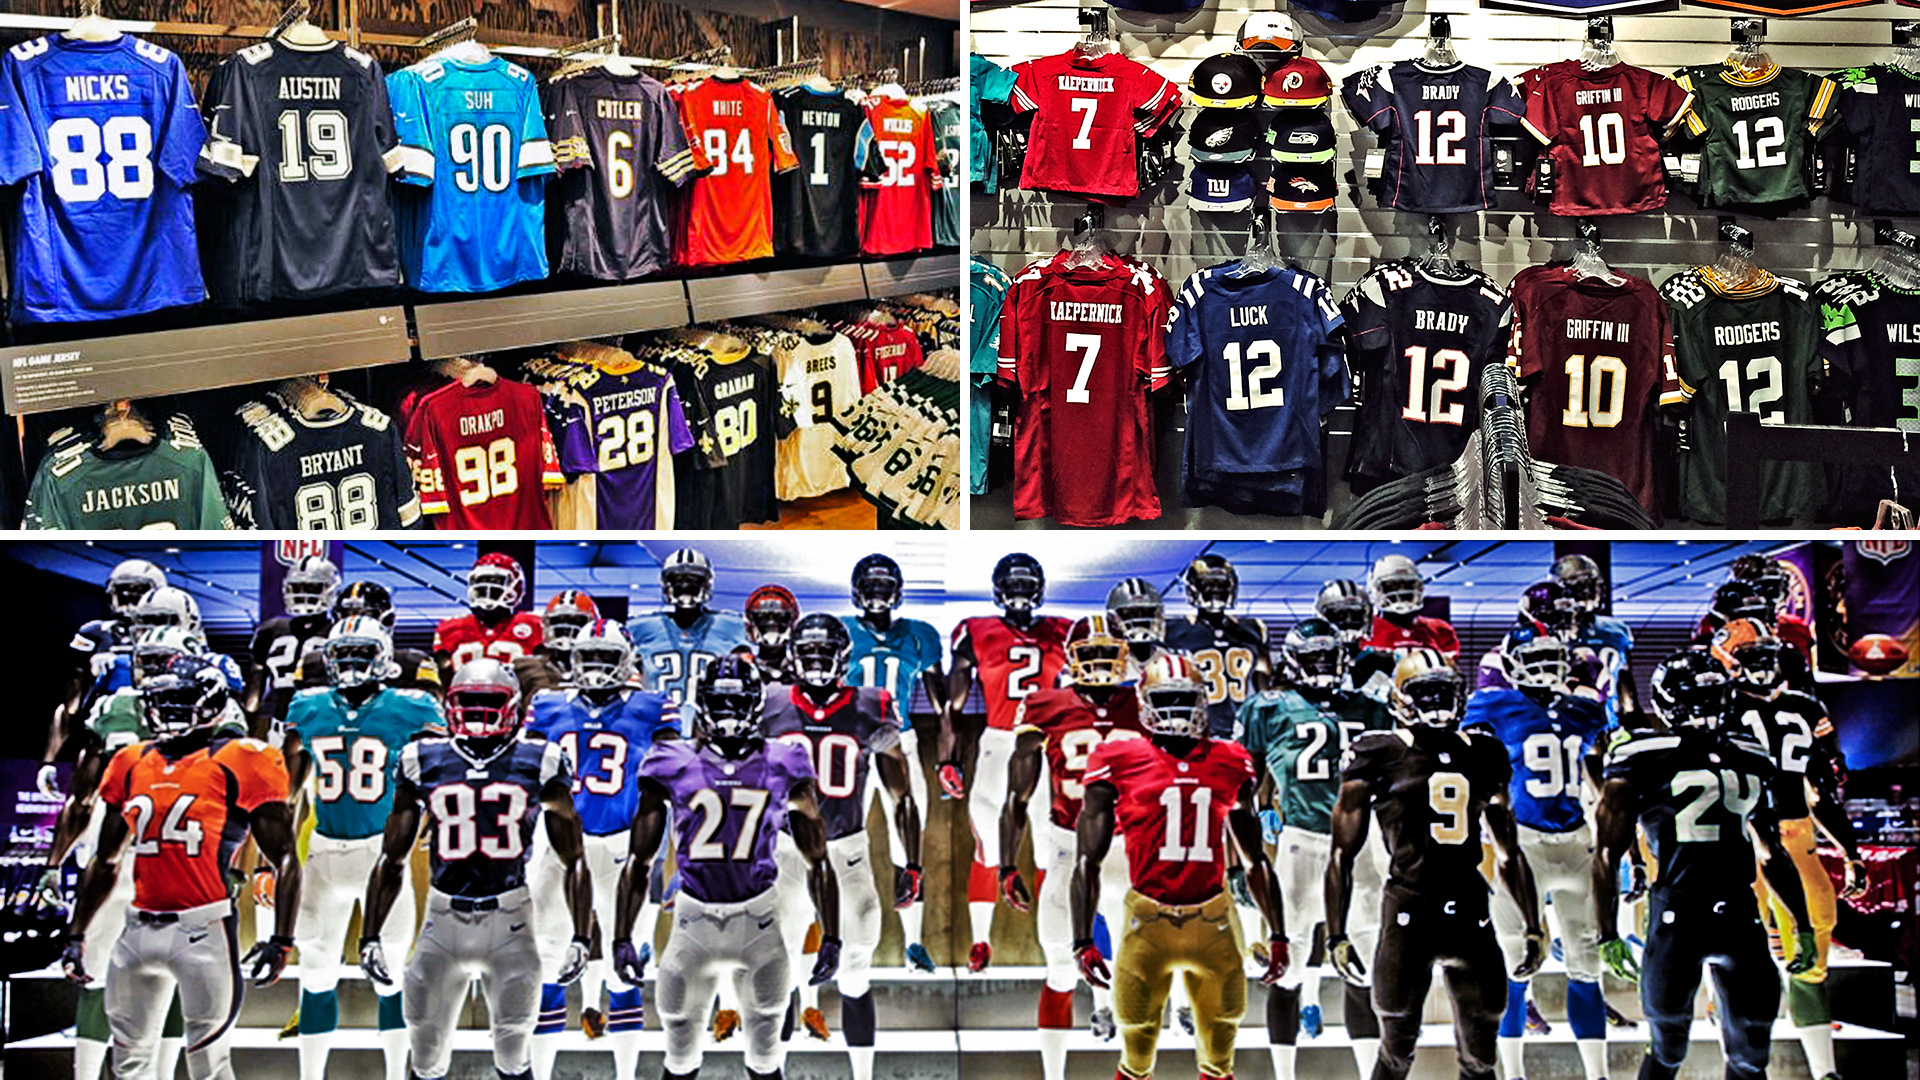 best nfl jerseys